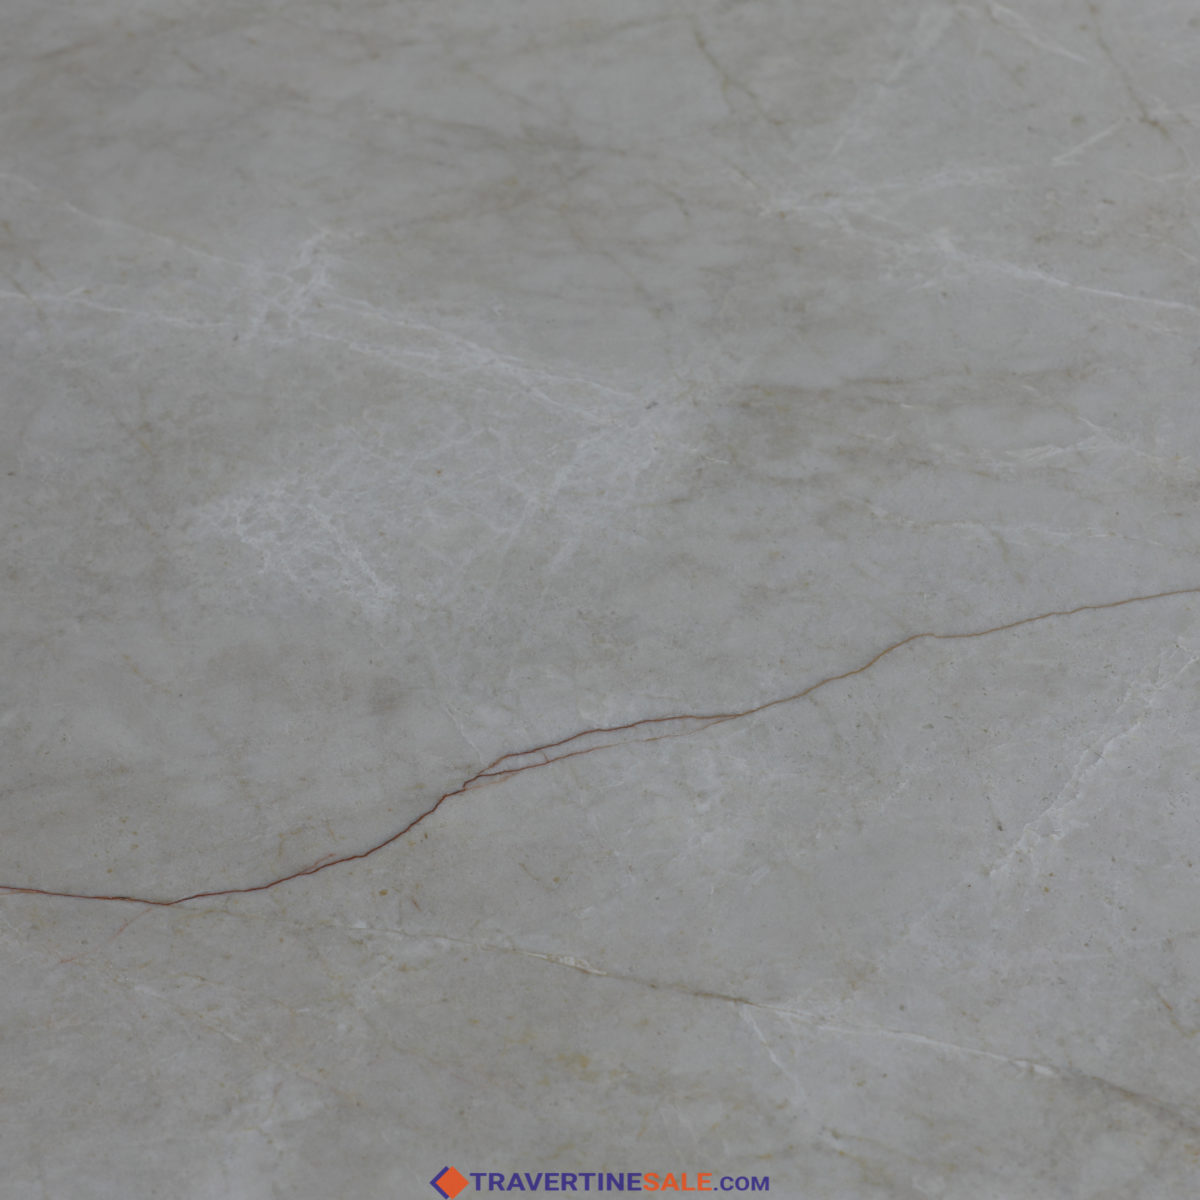 polished vanilla marble 60x60 cut to size tile with beige background and red vein